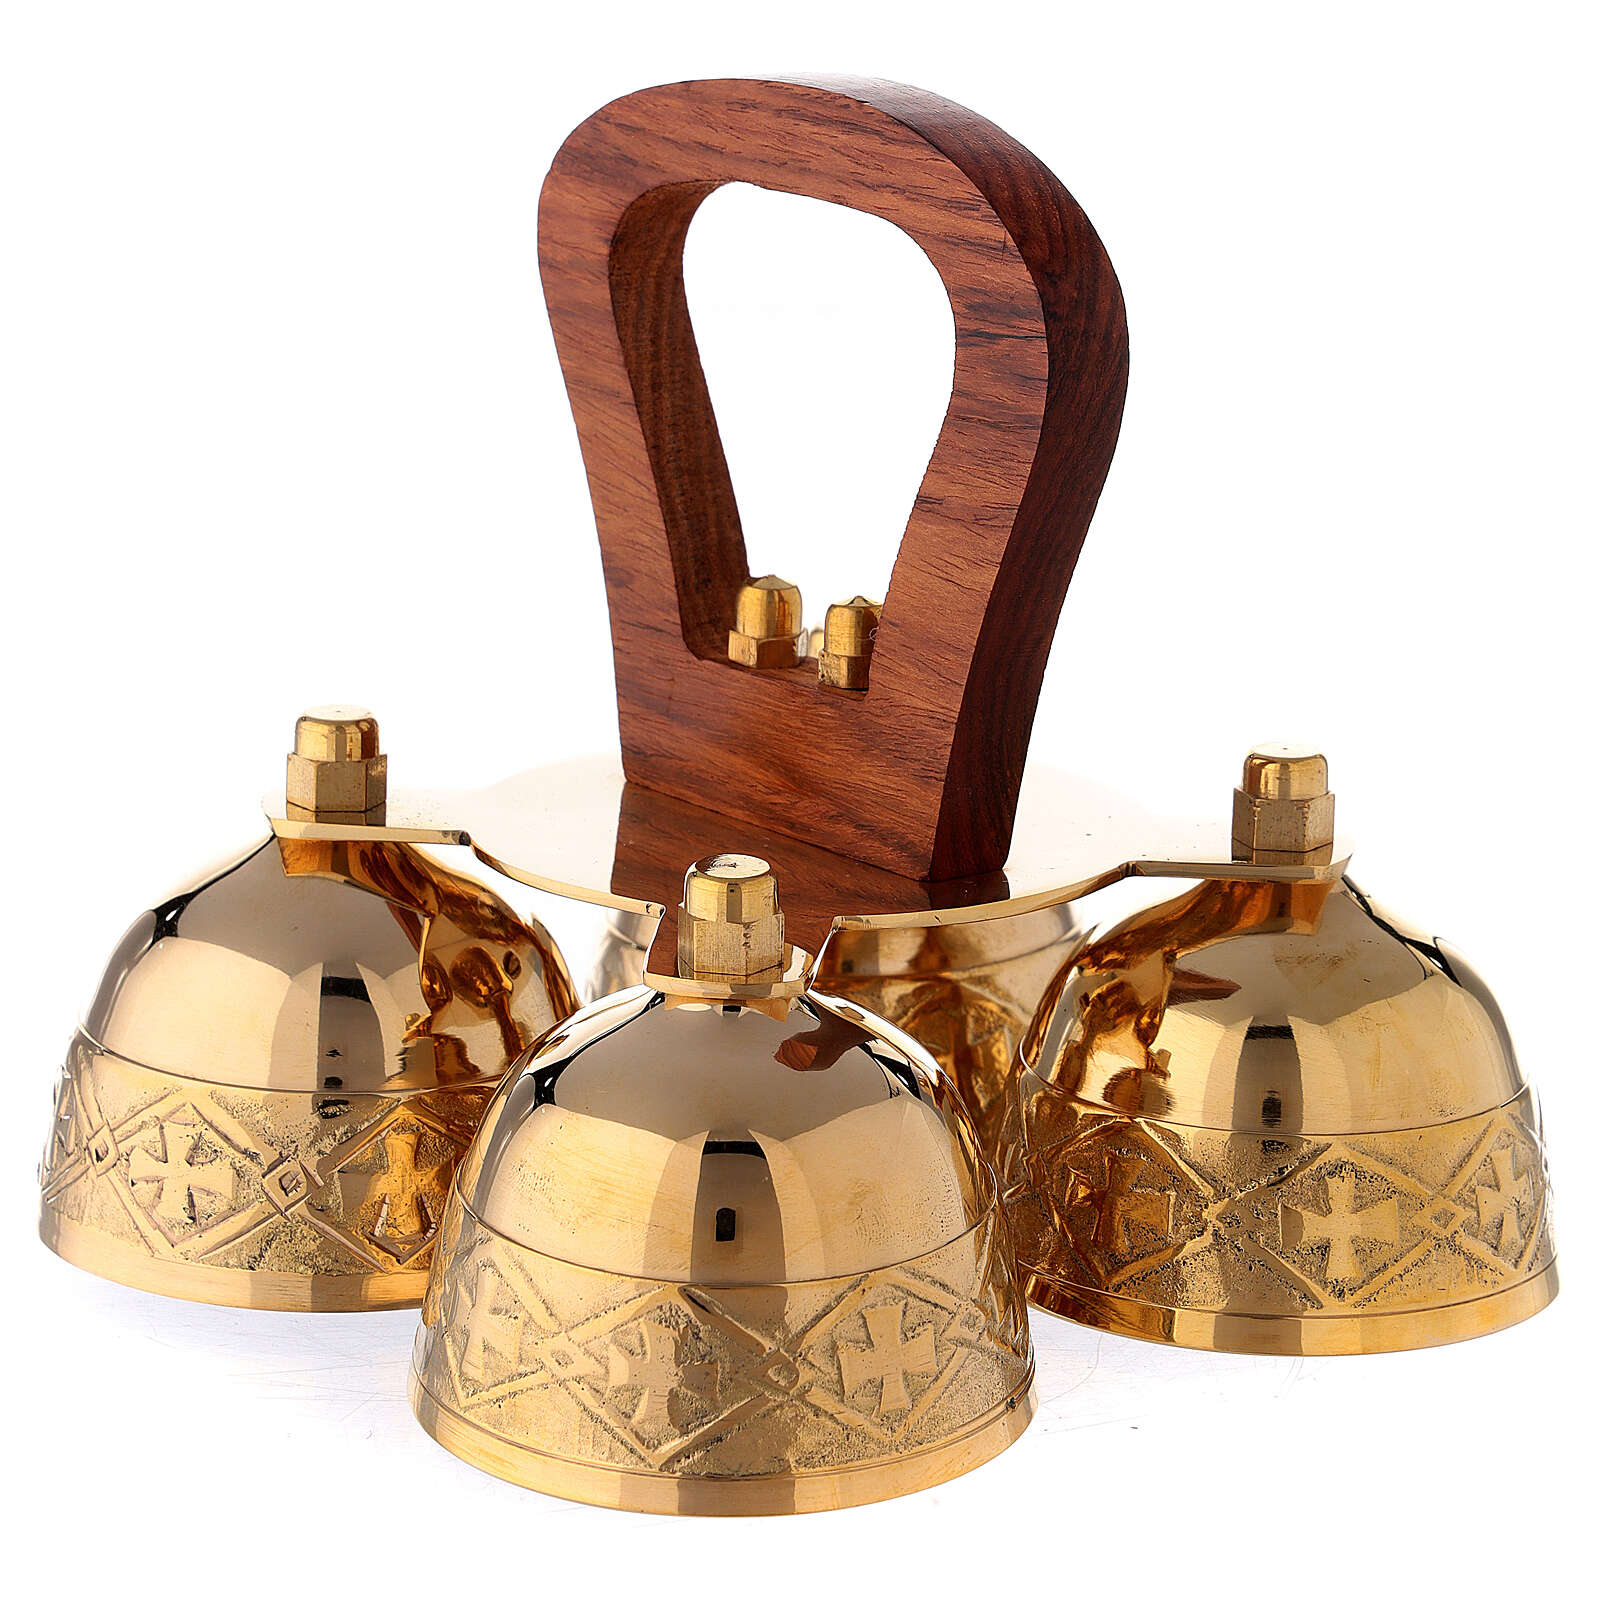 4-sounds liturgical bell with wooden handle 3